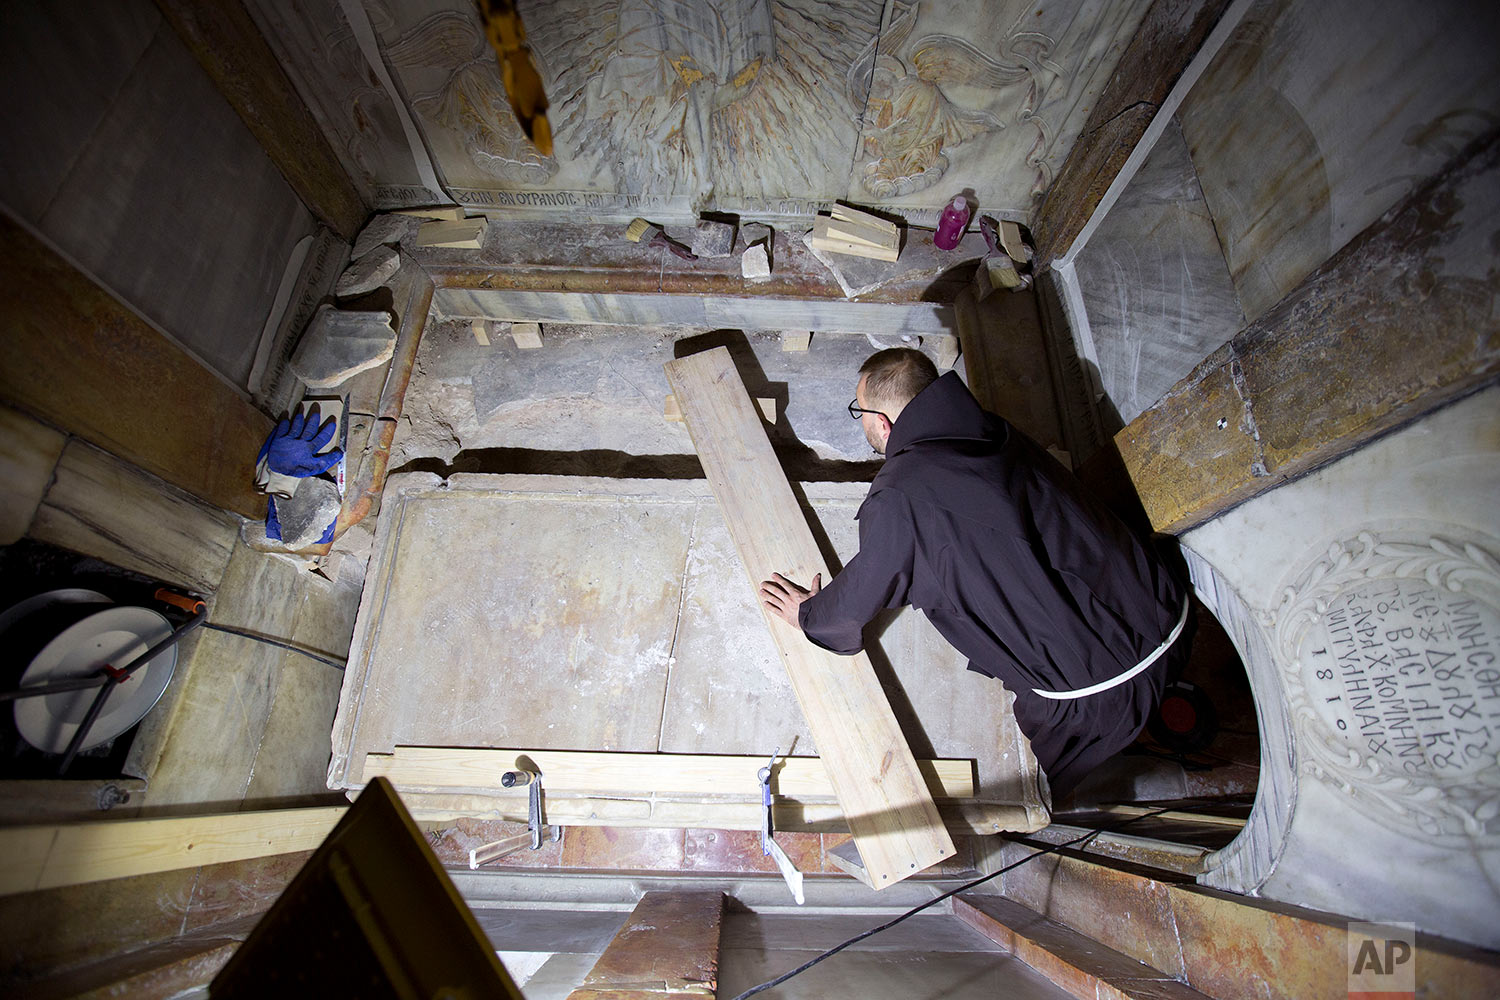 A priest looks at Jesus' tomb in the Church of the Holy Sepulchre in Jerusalem's old city in Jerusalem, Israel,  Thursday, Oct. 27, 2016. (AP Photo/Oded Balilty)